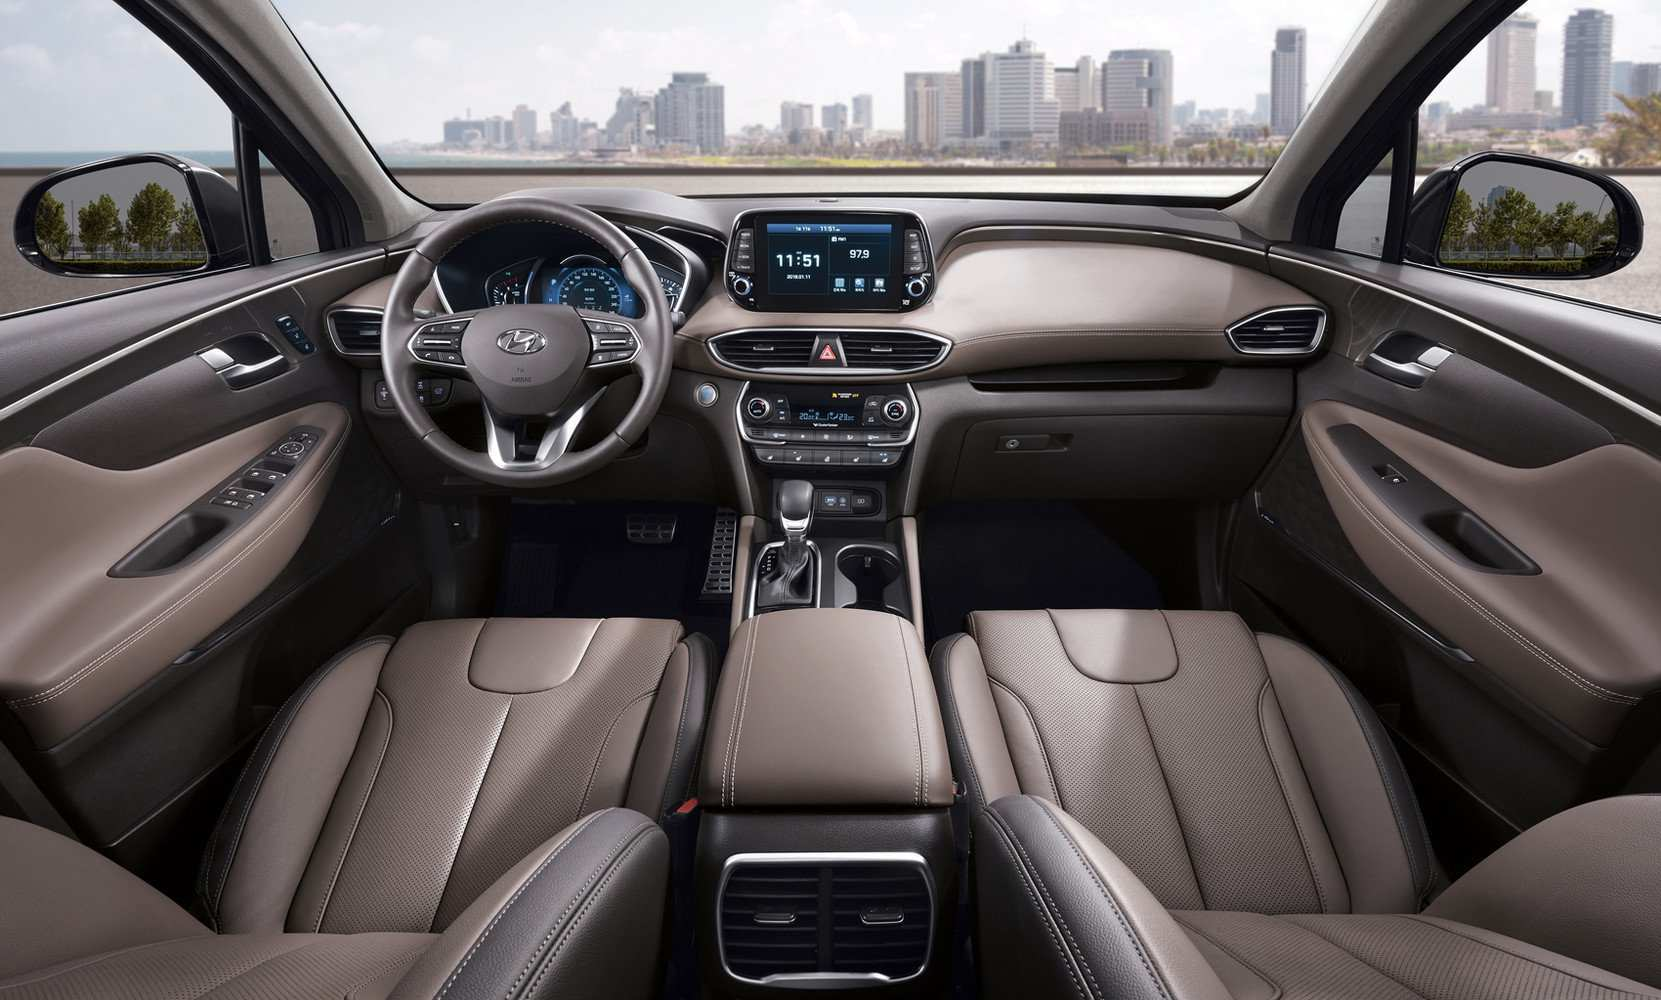 94 All New Hyundai Santa Fe 2020 Release Date And Concept